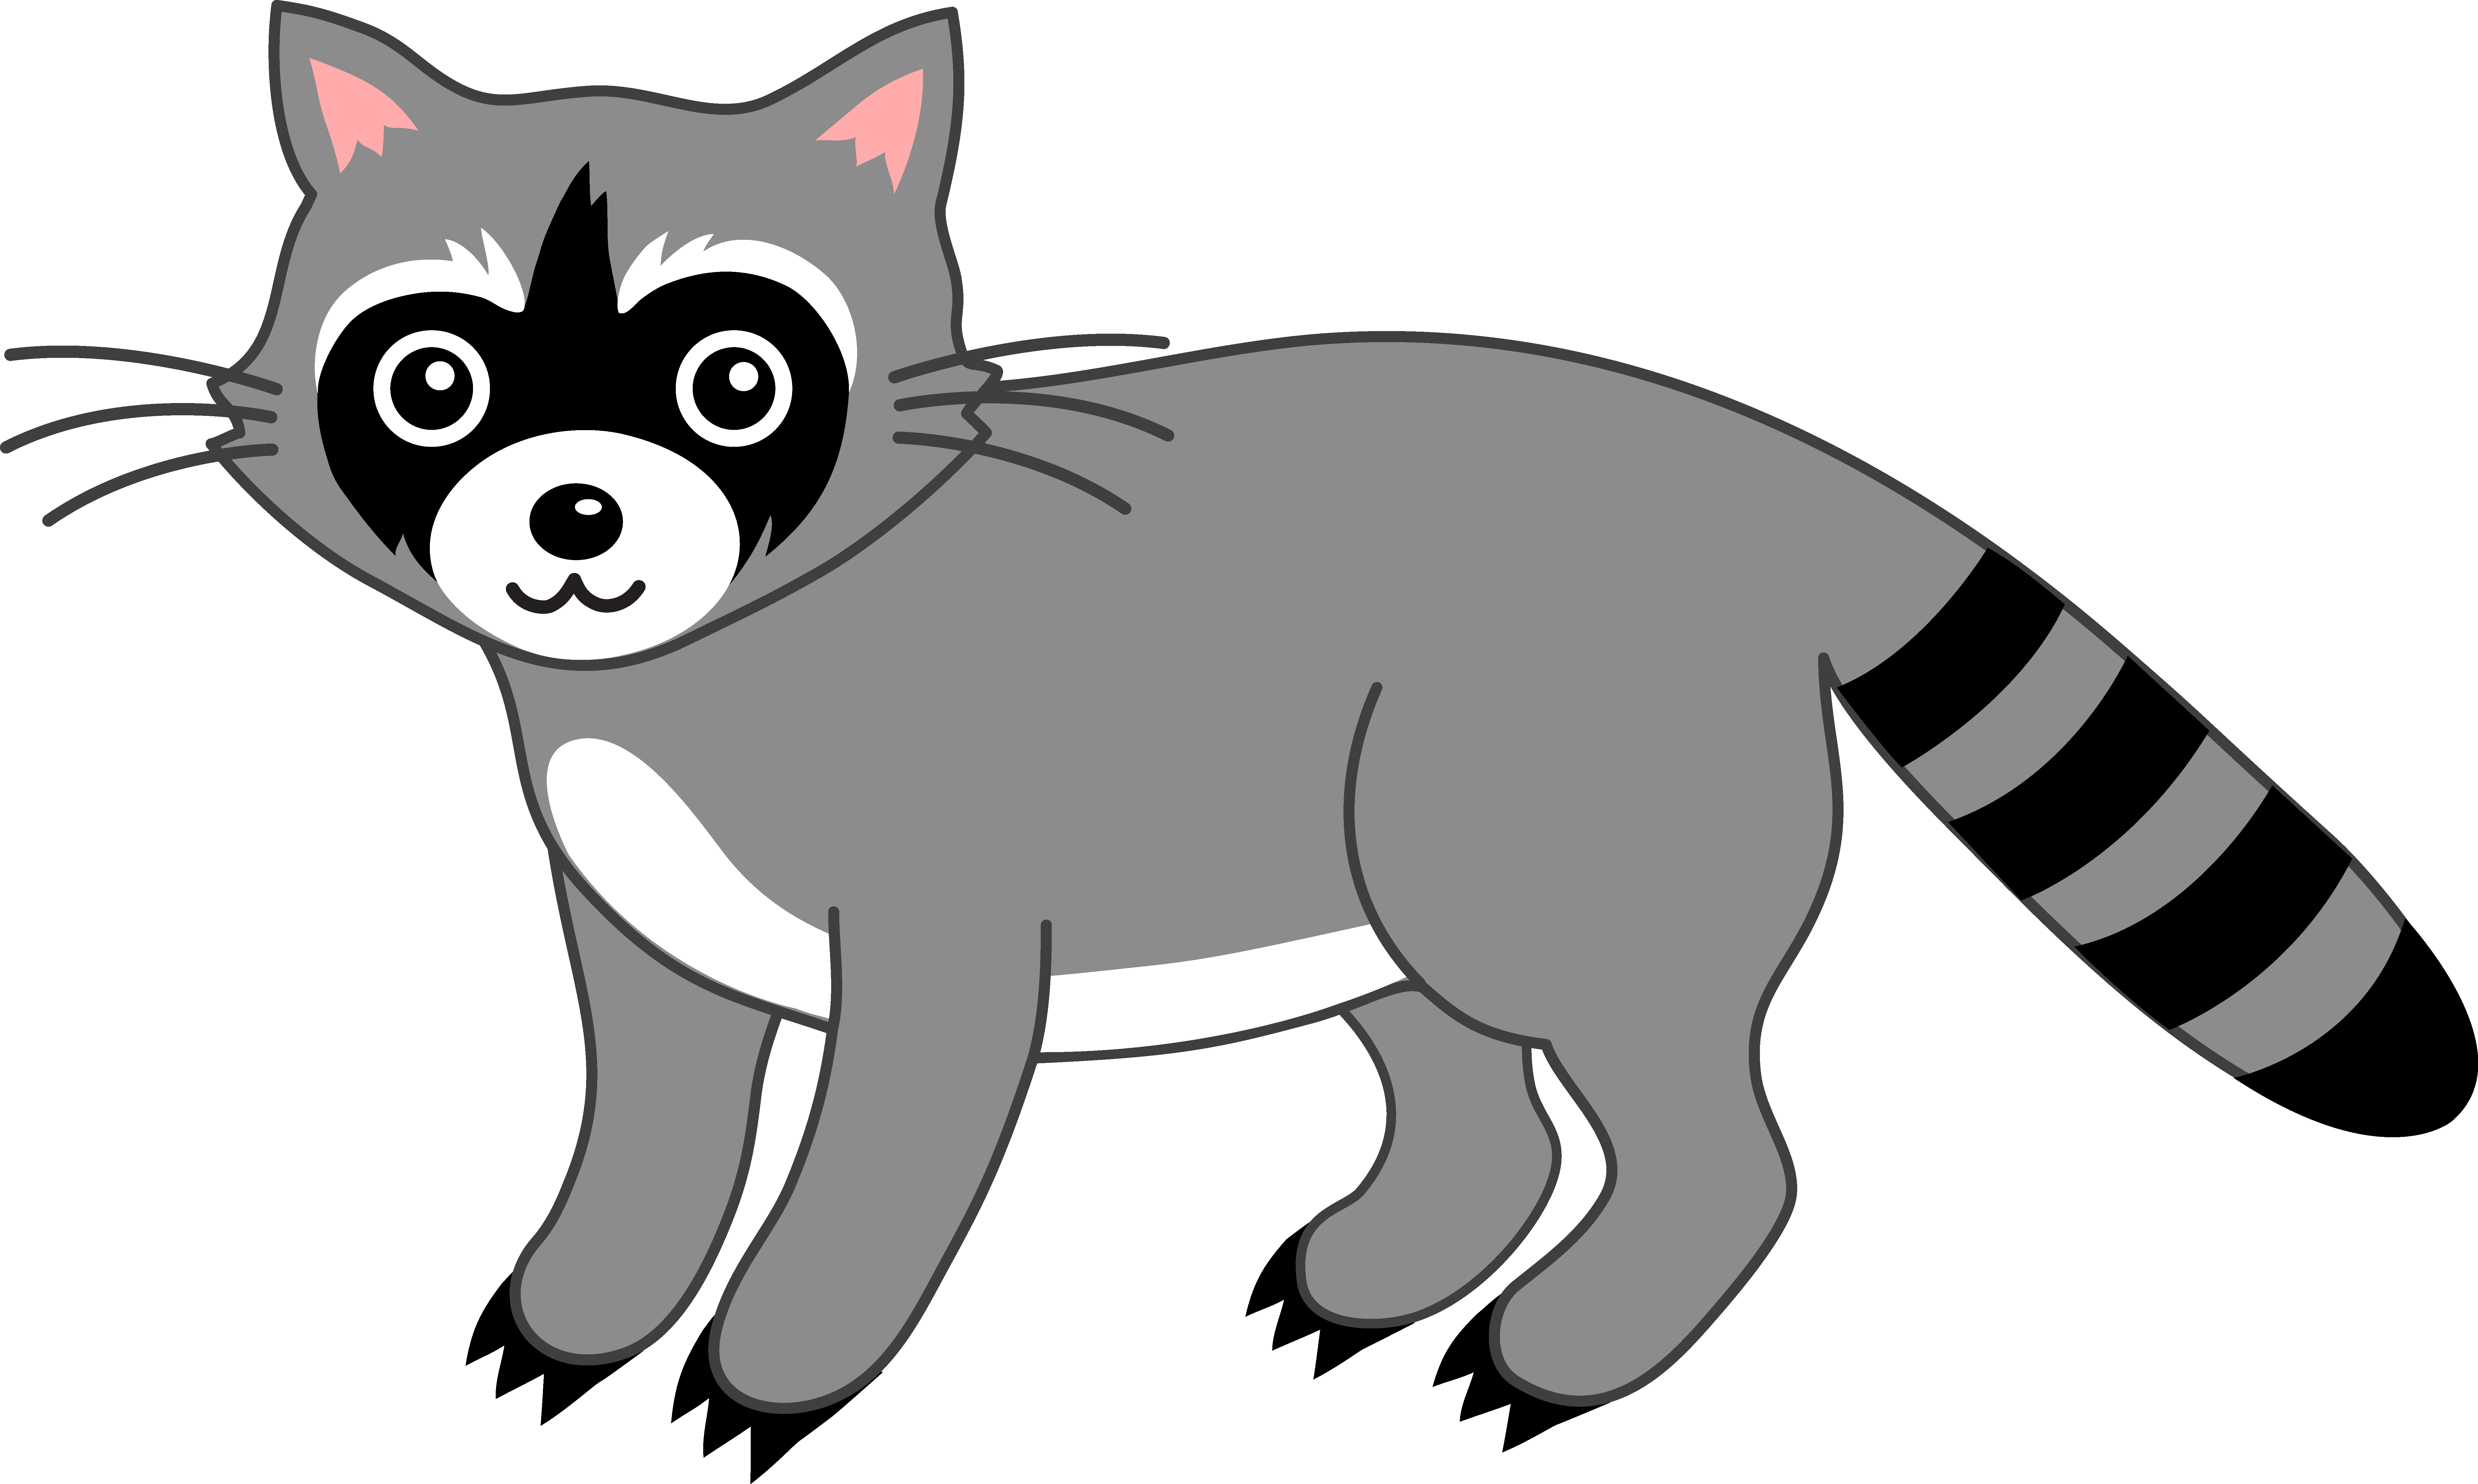 Racoon clipart. Best of raccoon design